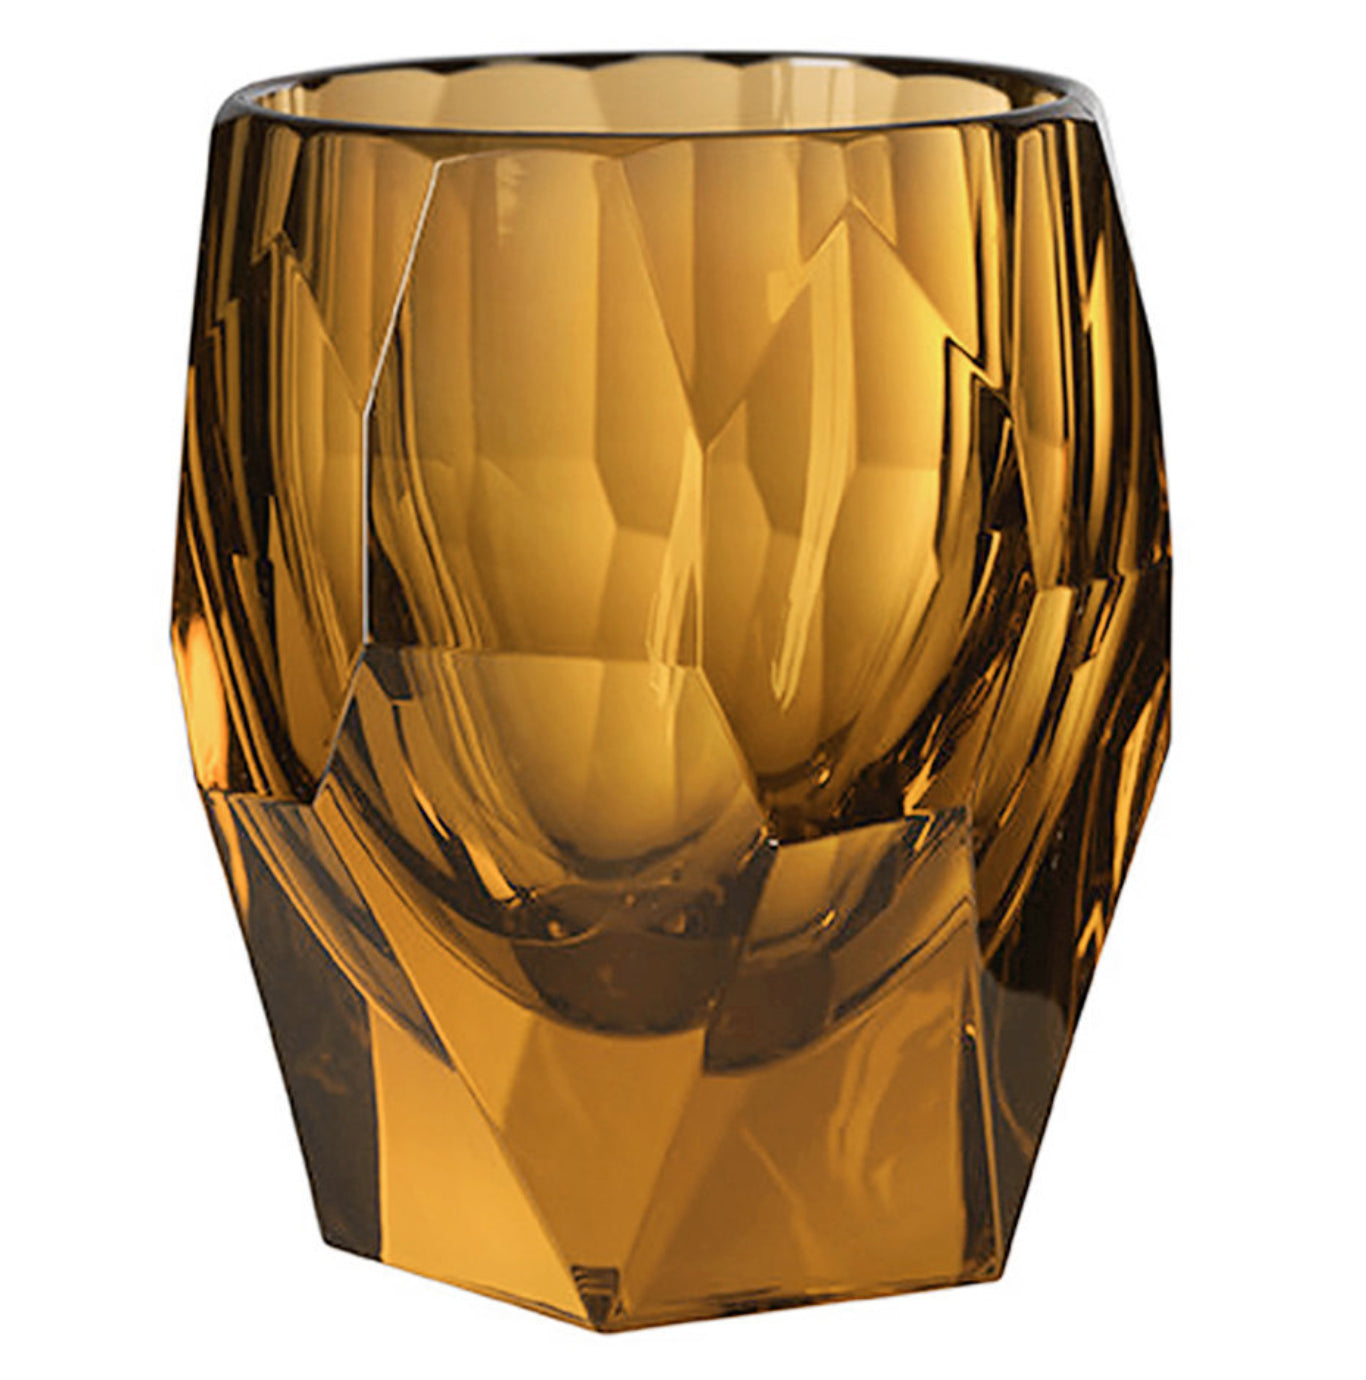 Milly Tumbler - Set of 6 - Amber